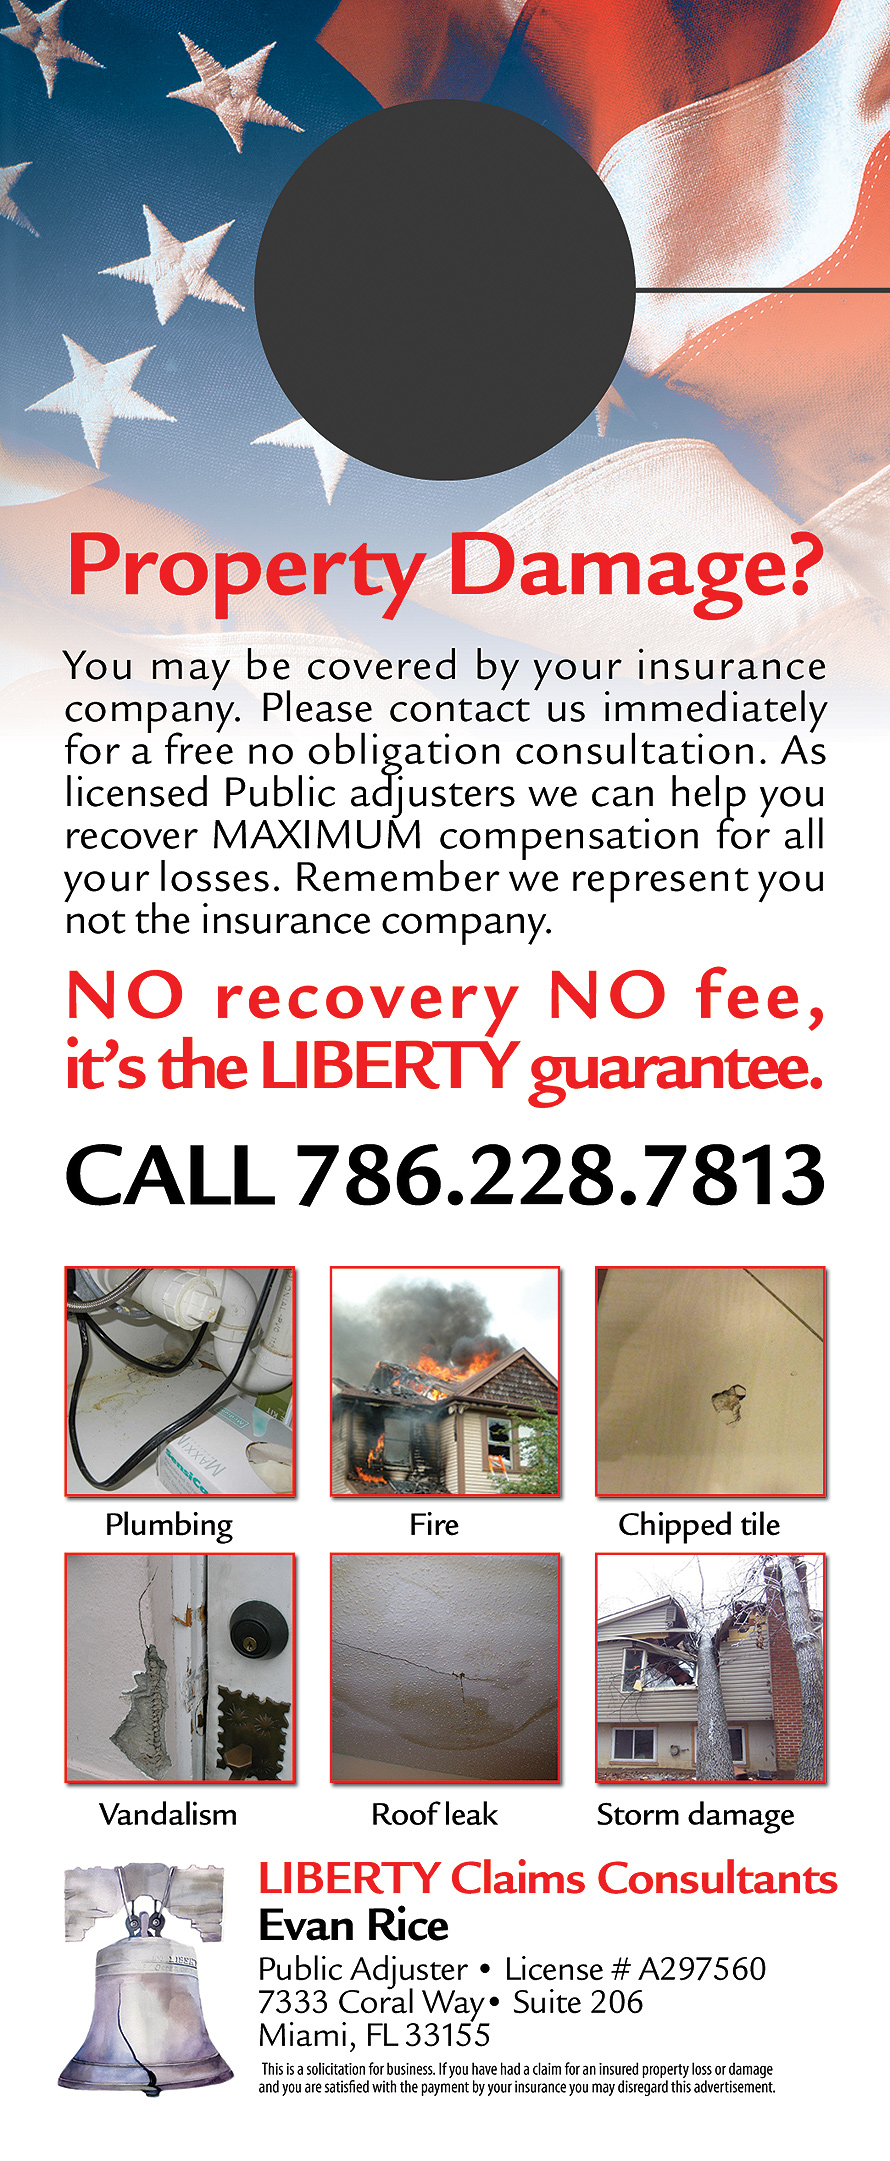 Evan Rice Liberty Claims Consultant